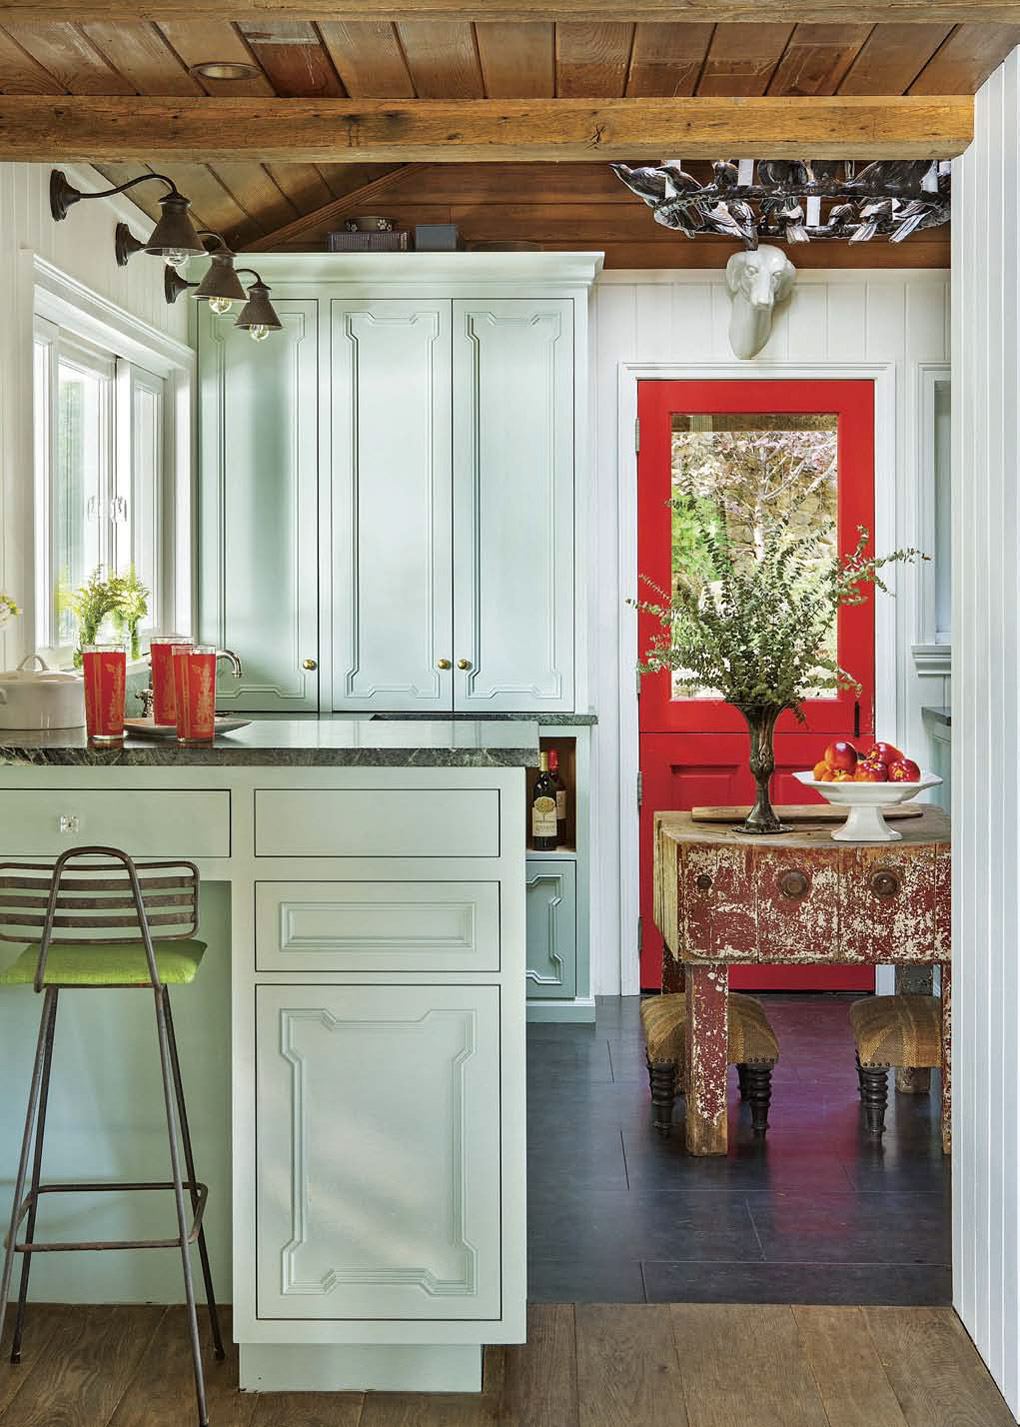 Light aqua cabinets in a kitchen with exposed beam ceilings and a bright red dutch door.